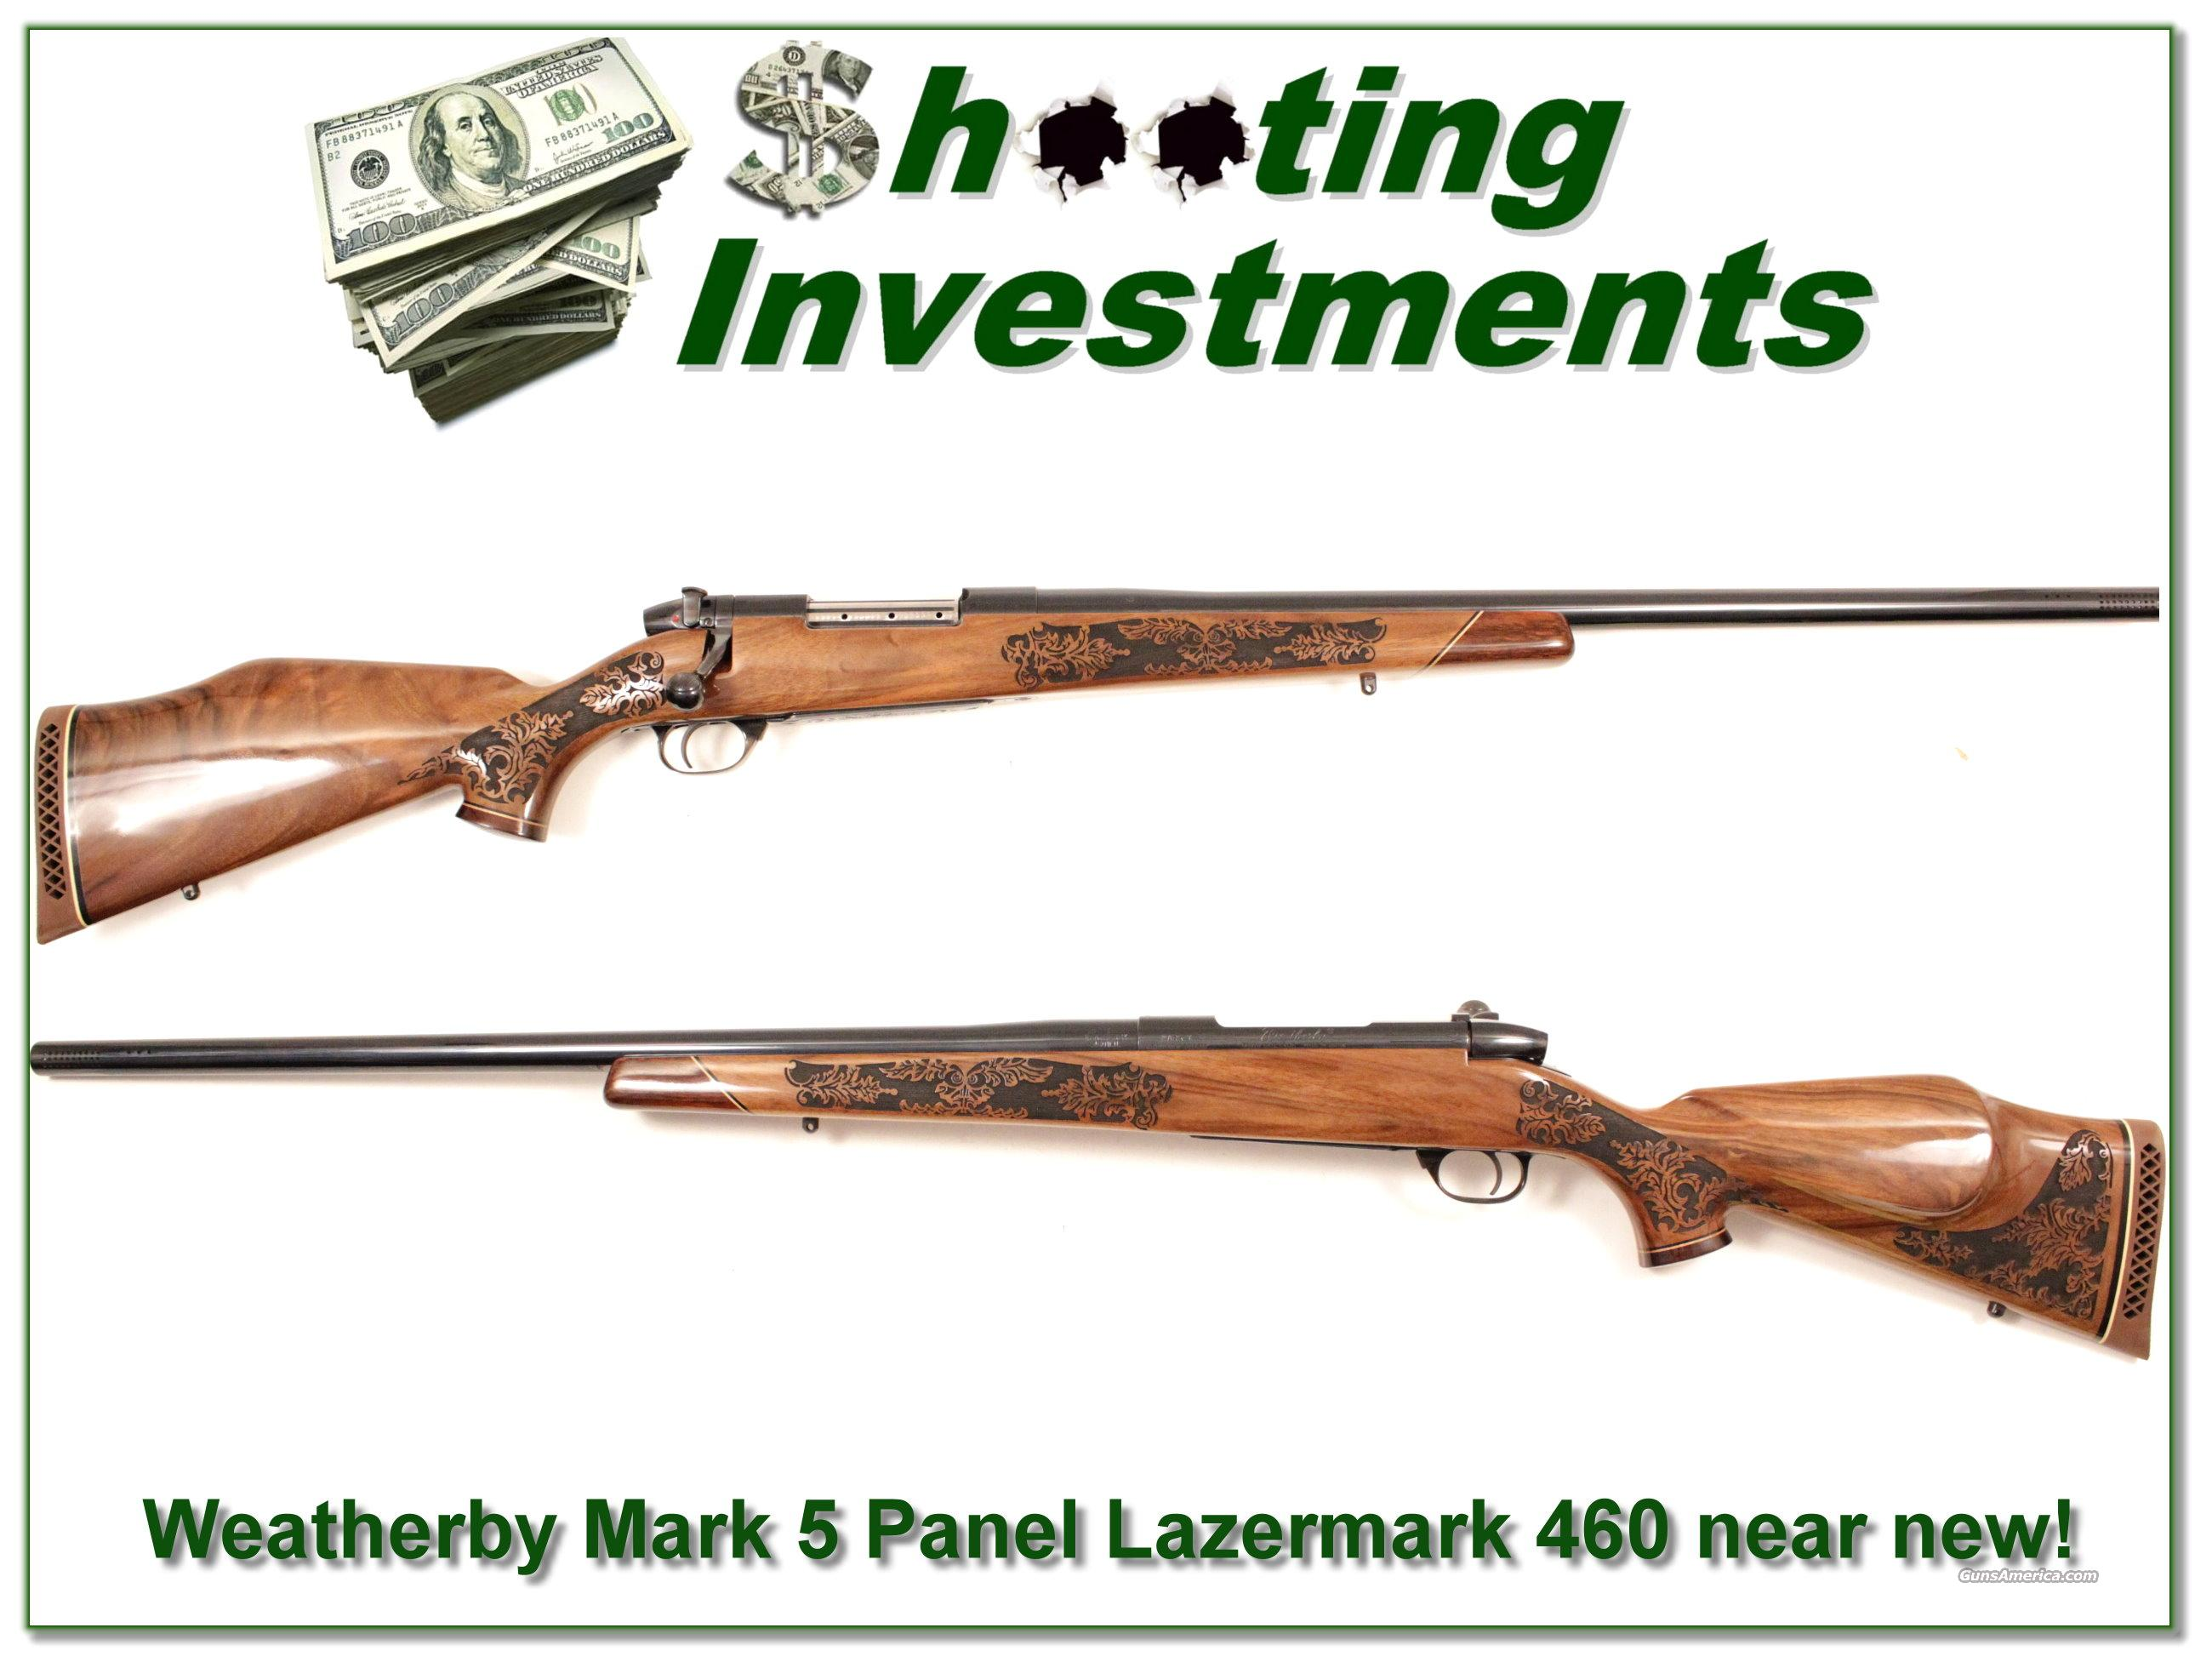 Weatherby Mark V 460 5 Panel Lazermark near new!  Guns > Rifles > Weatherby Rifles > Sporting